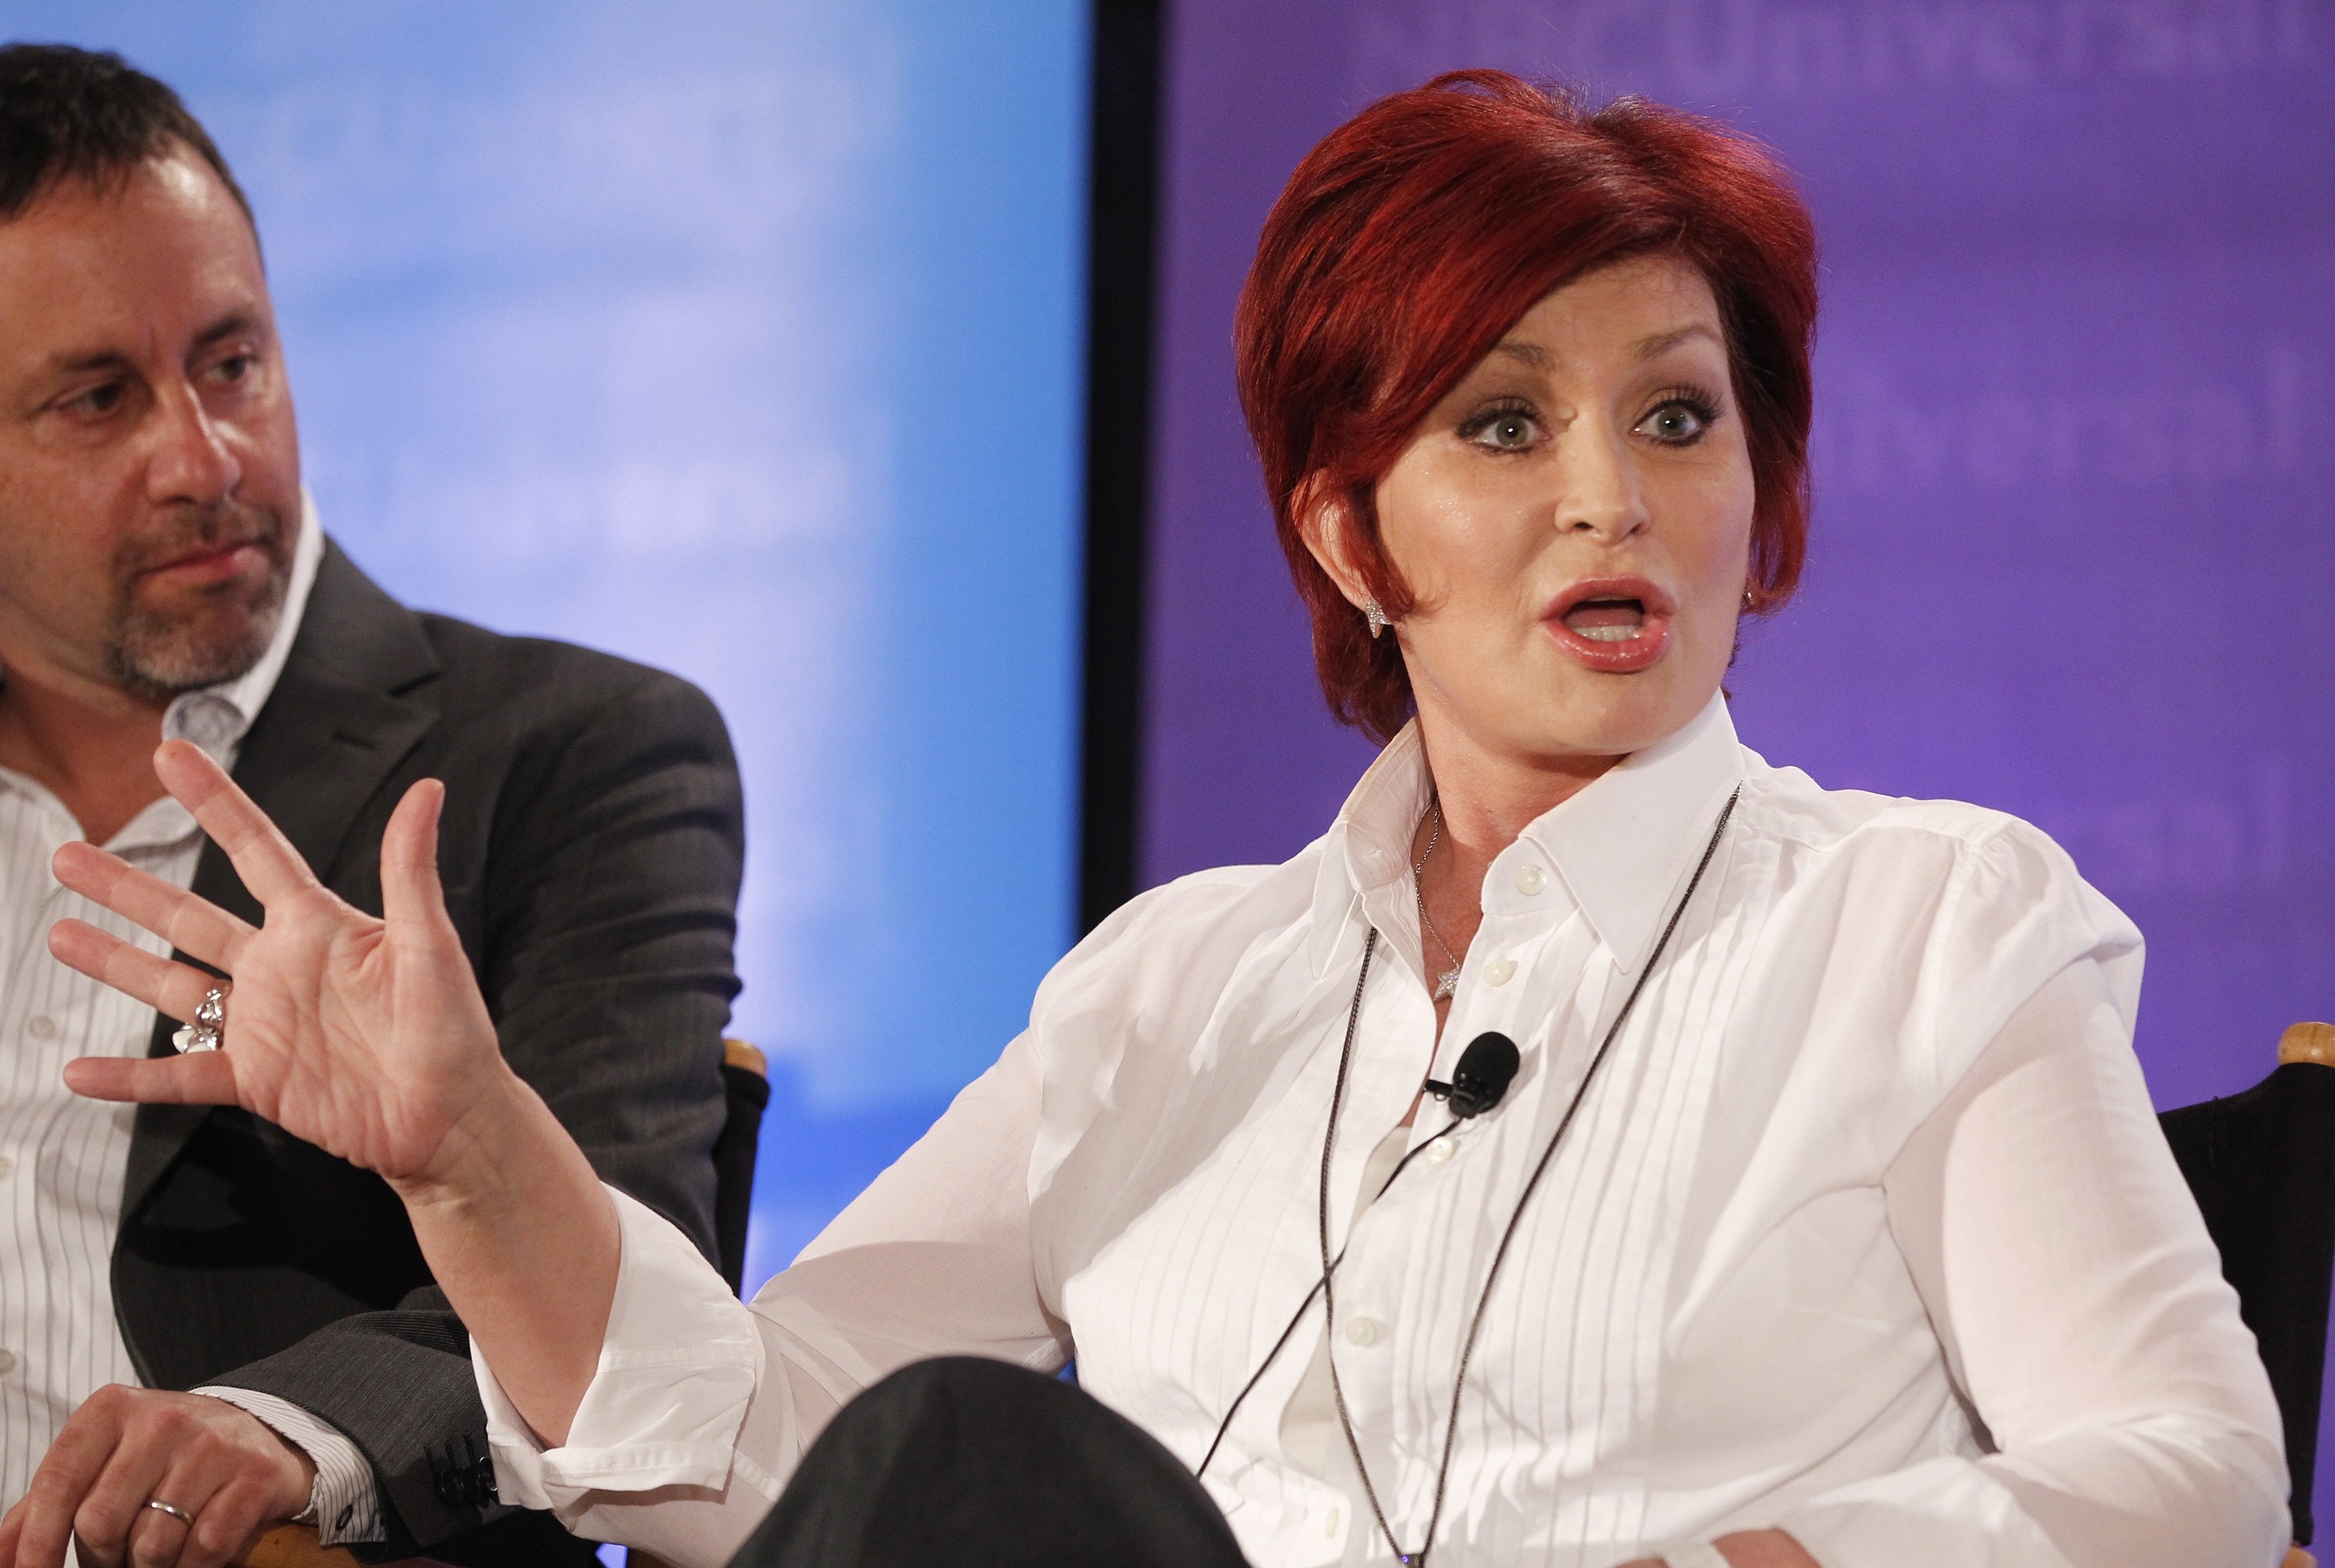 Sharon Osbourne's tooth falls out on live TV